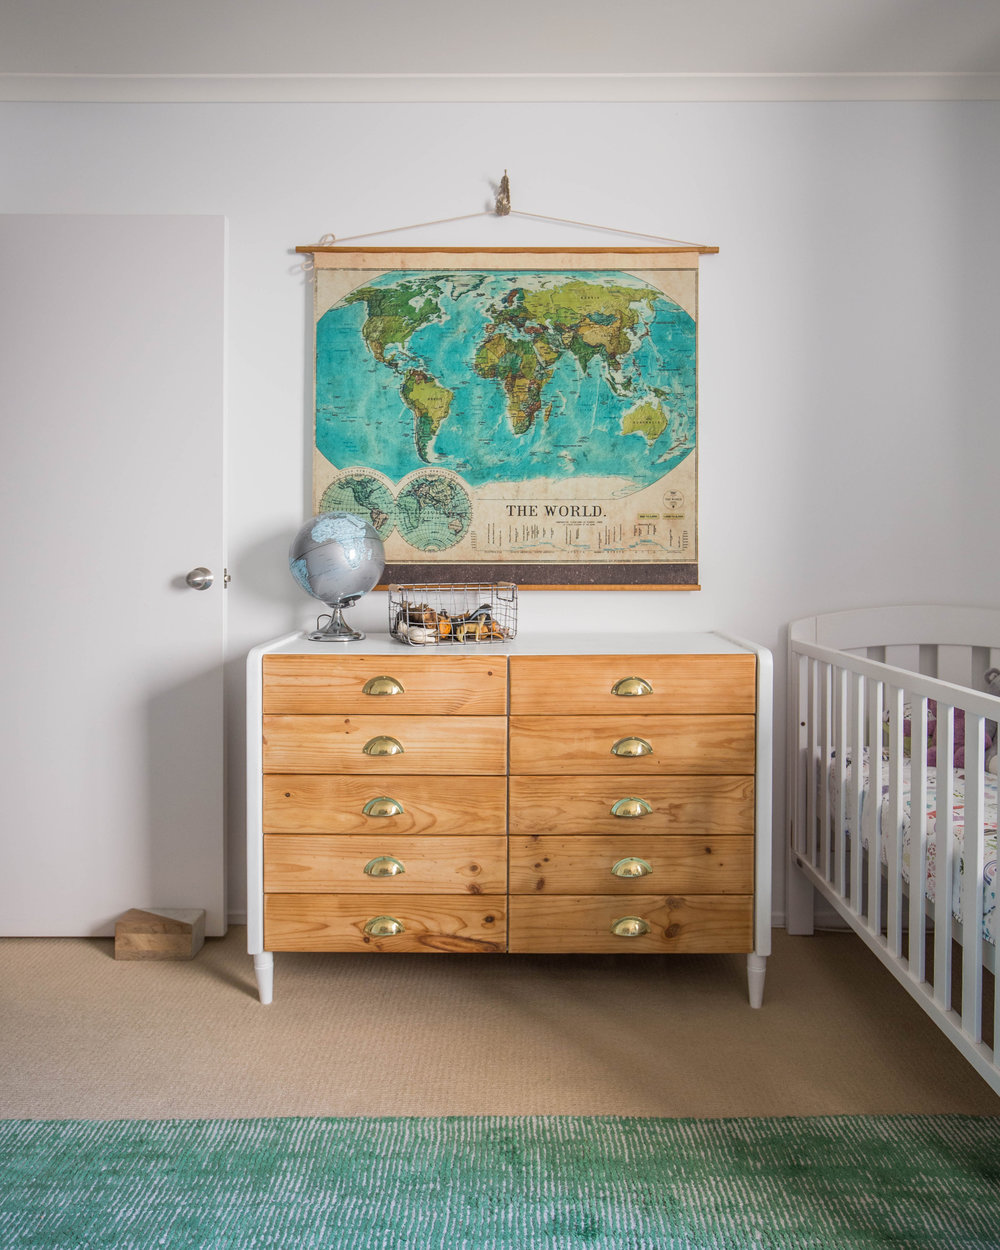 Tanika's Baby Room - Nursery - Interior Design - Tanika Blair Stying & Photography - IMG_8896.jpg